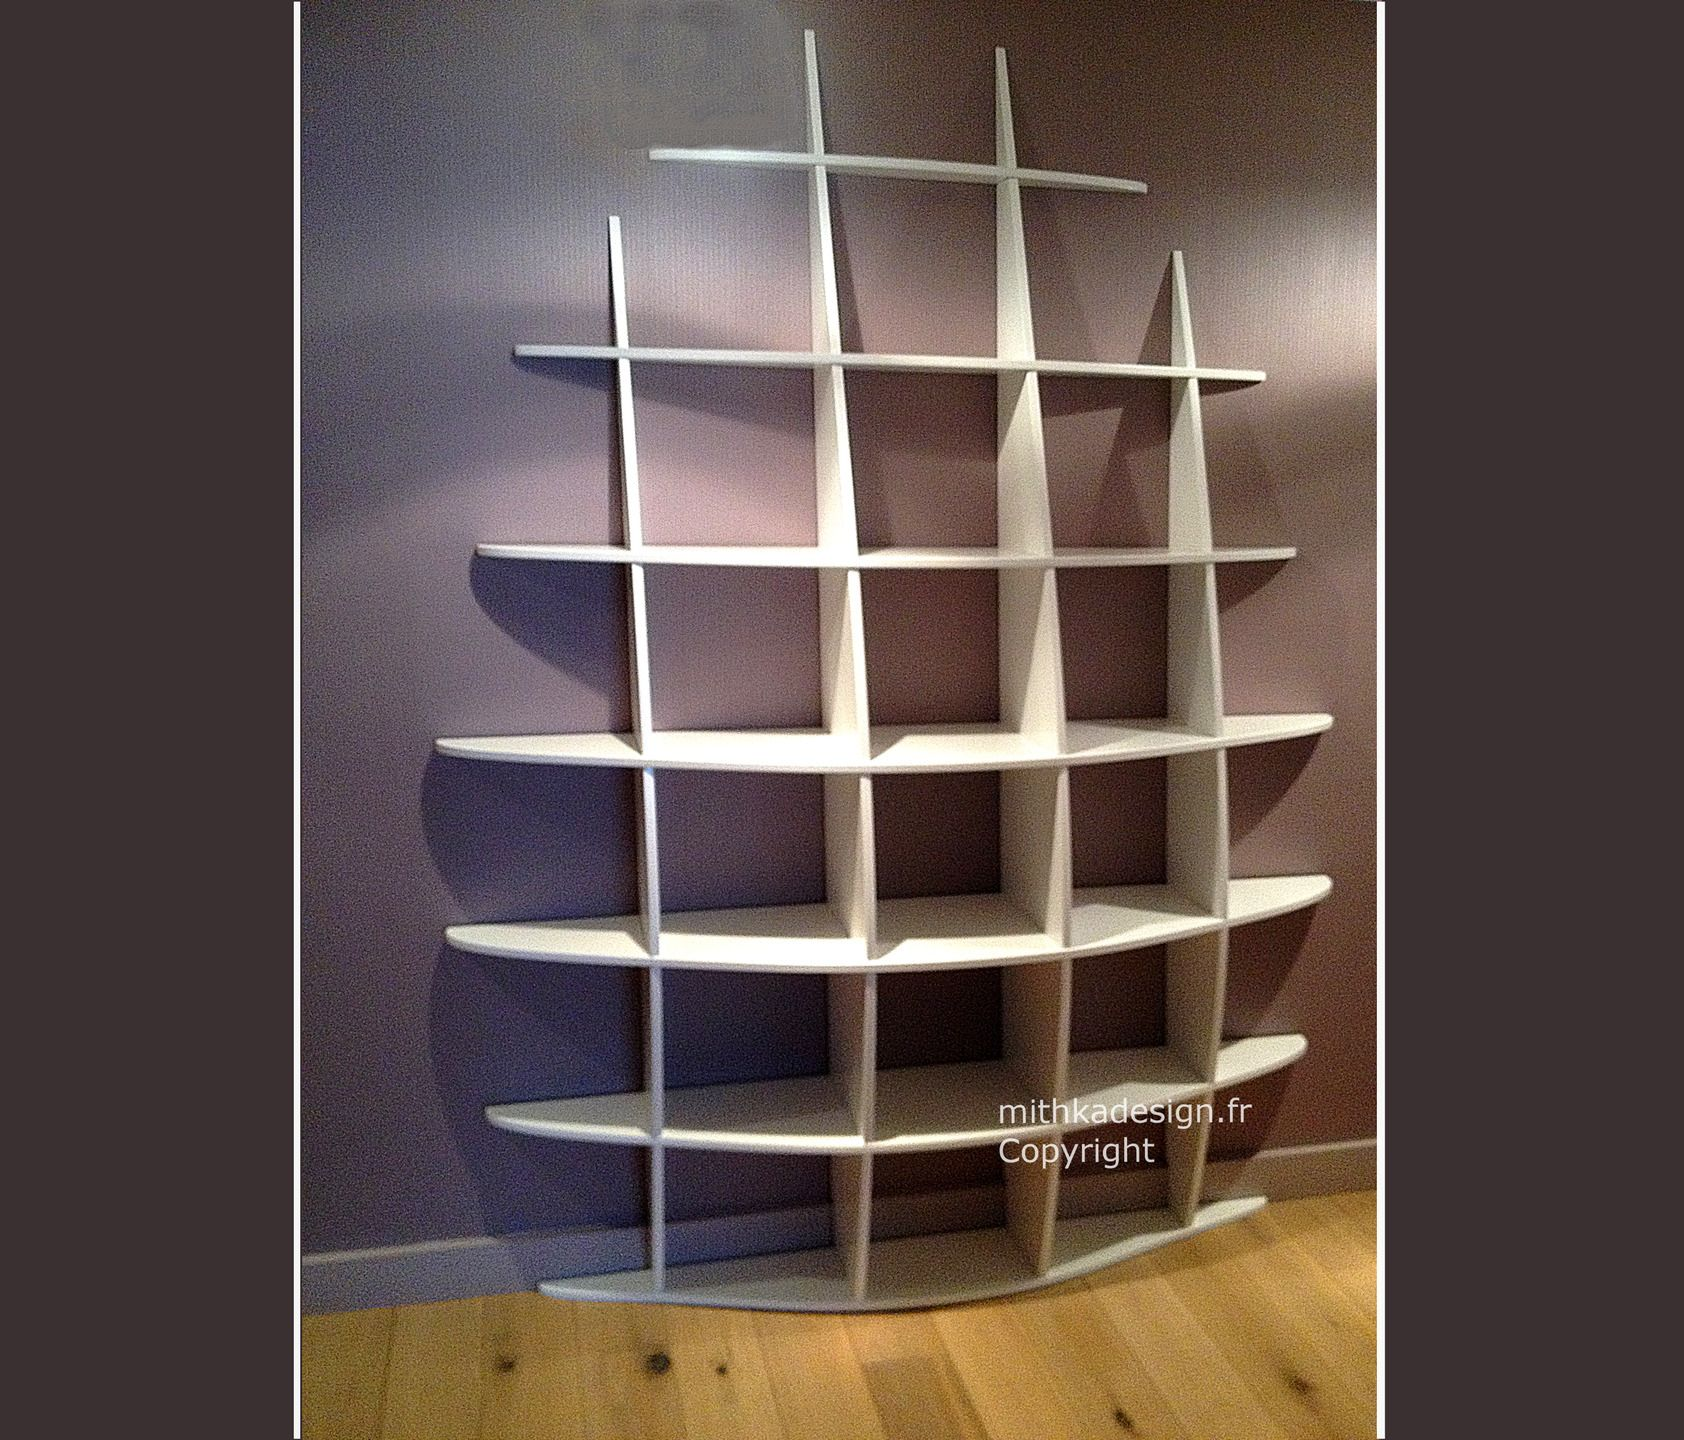 Etagere ikea fixation invisible - Comment fixer etagere murale fixation invisible ...